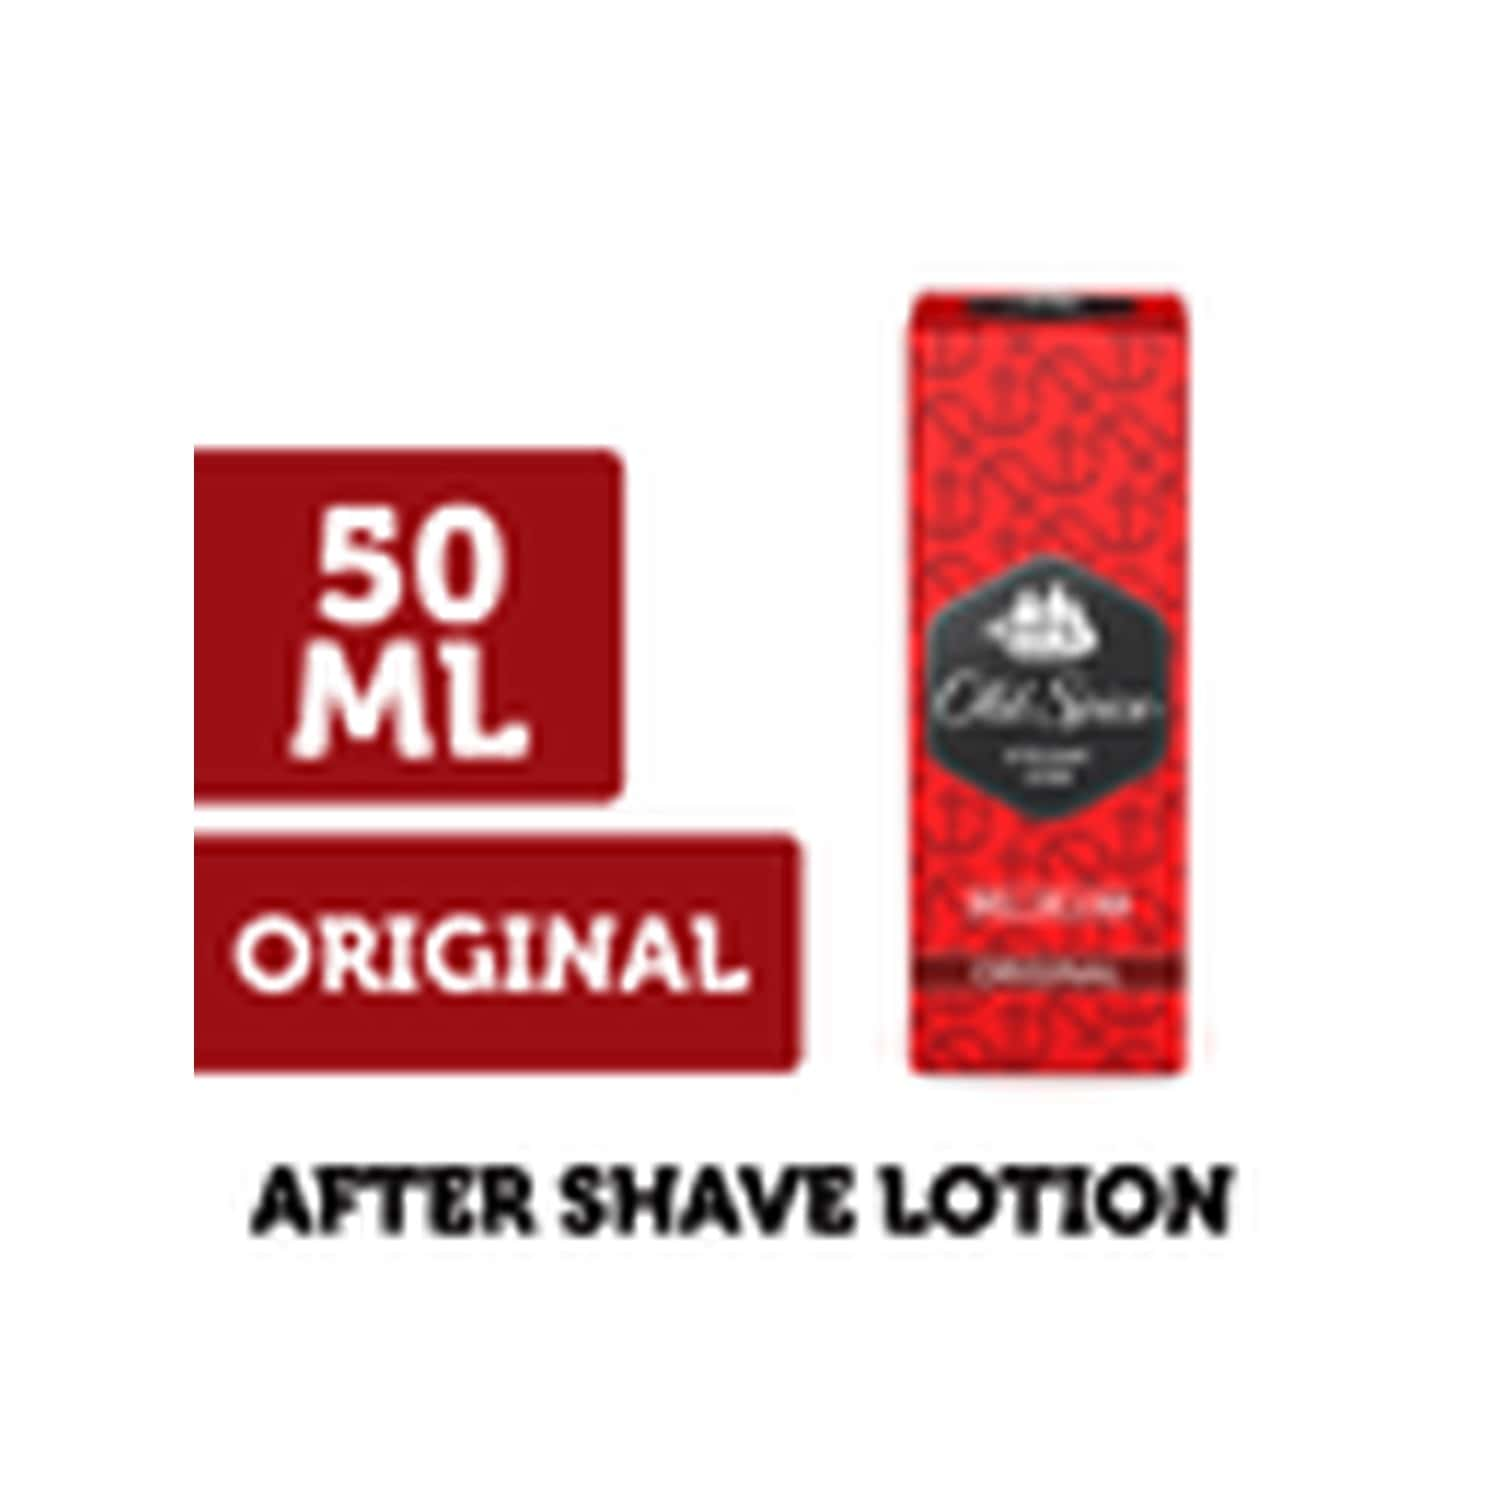 Old Spice After Shave Lotion (original) - 50ml